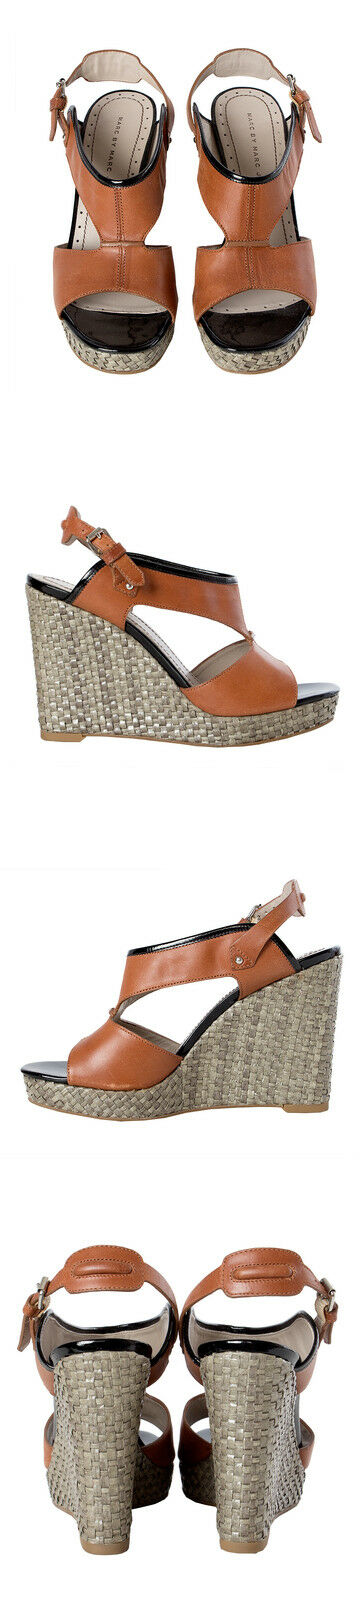 41413 auth Braun MARC by MARC JACOBS Braun auth leather & raffia Wedge Sandals schuhes 36 3253b1